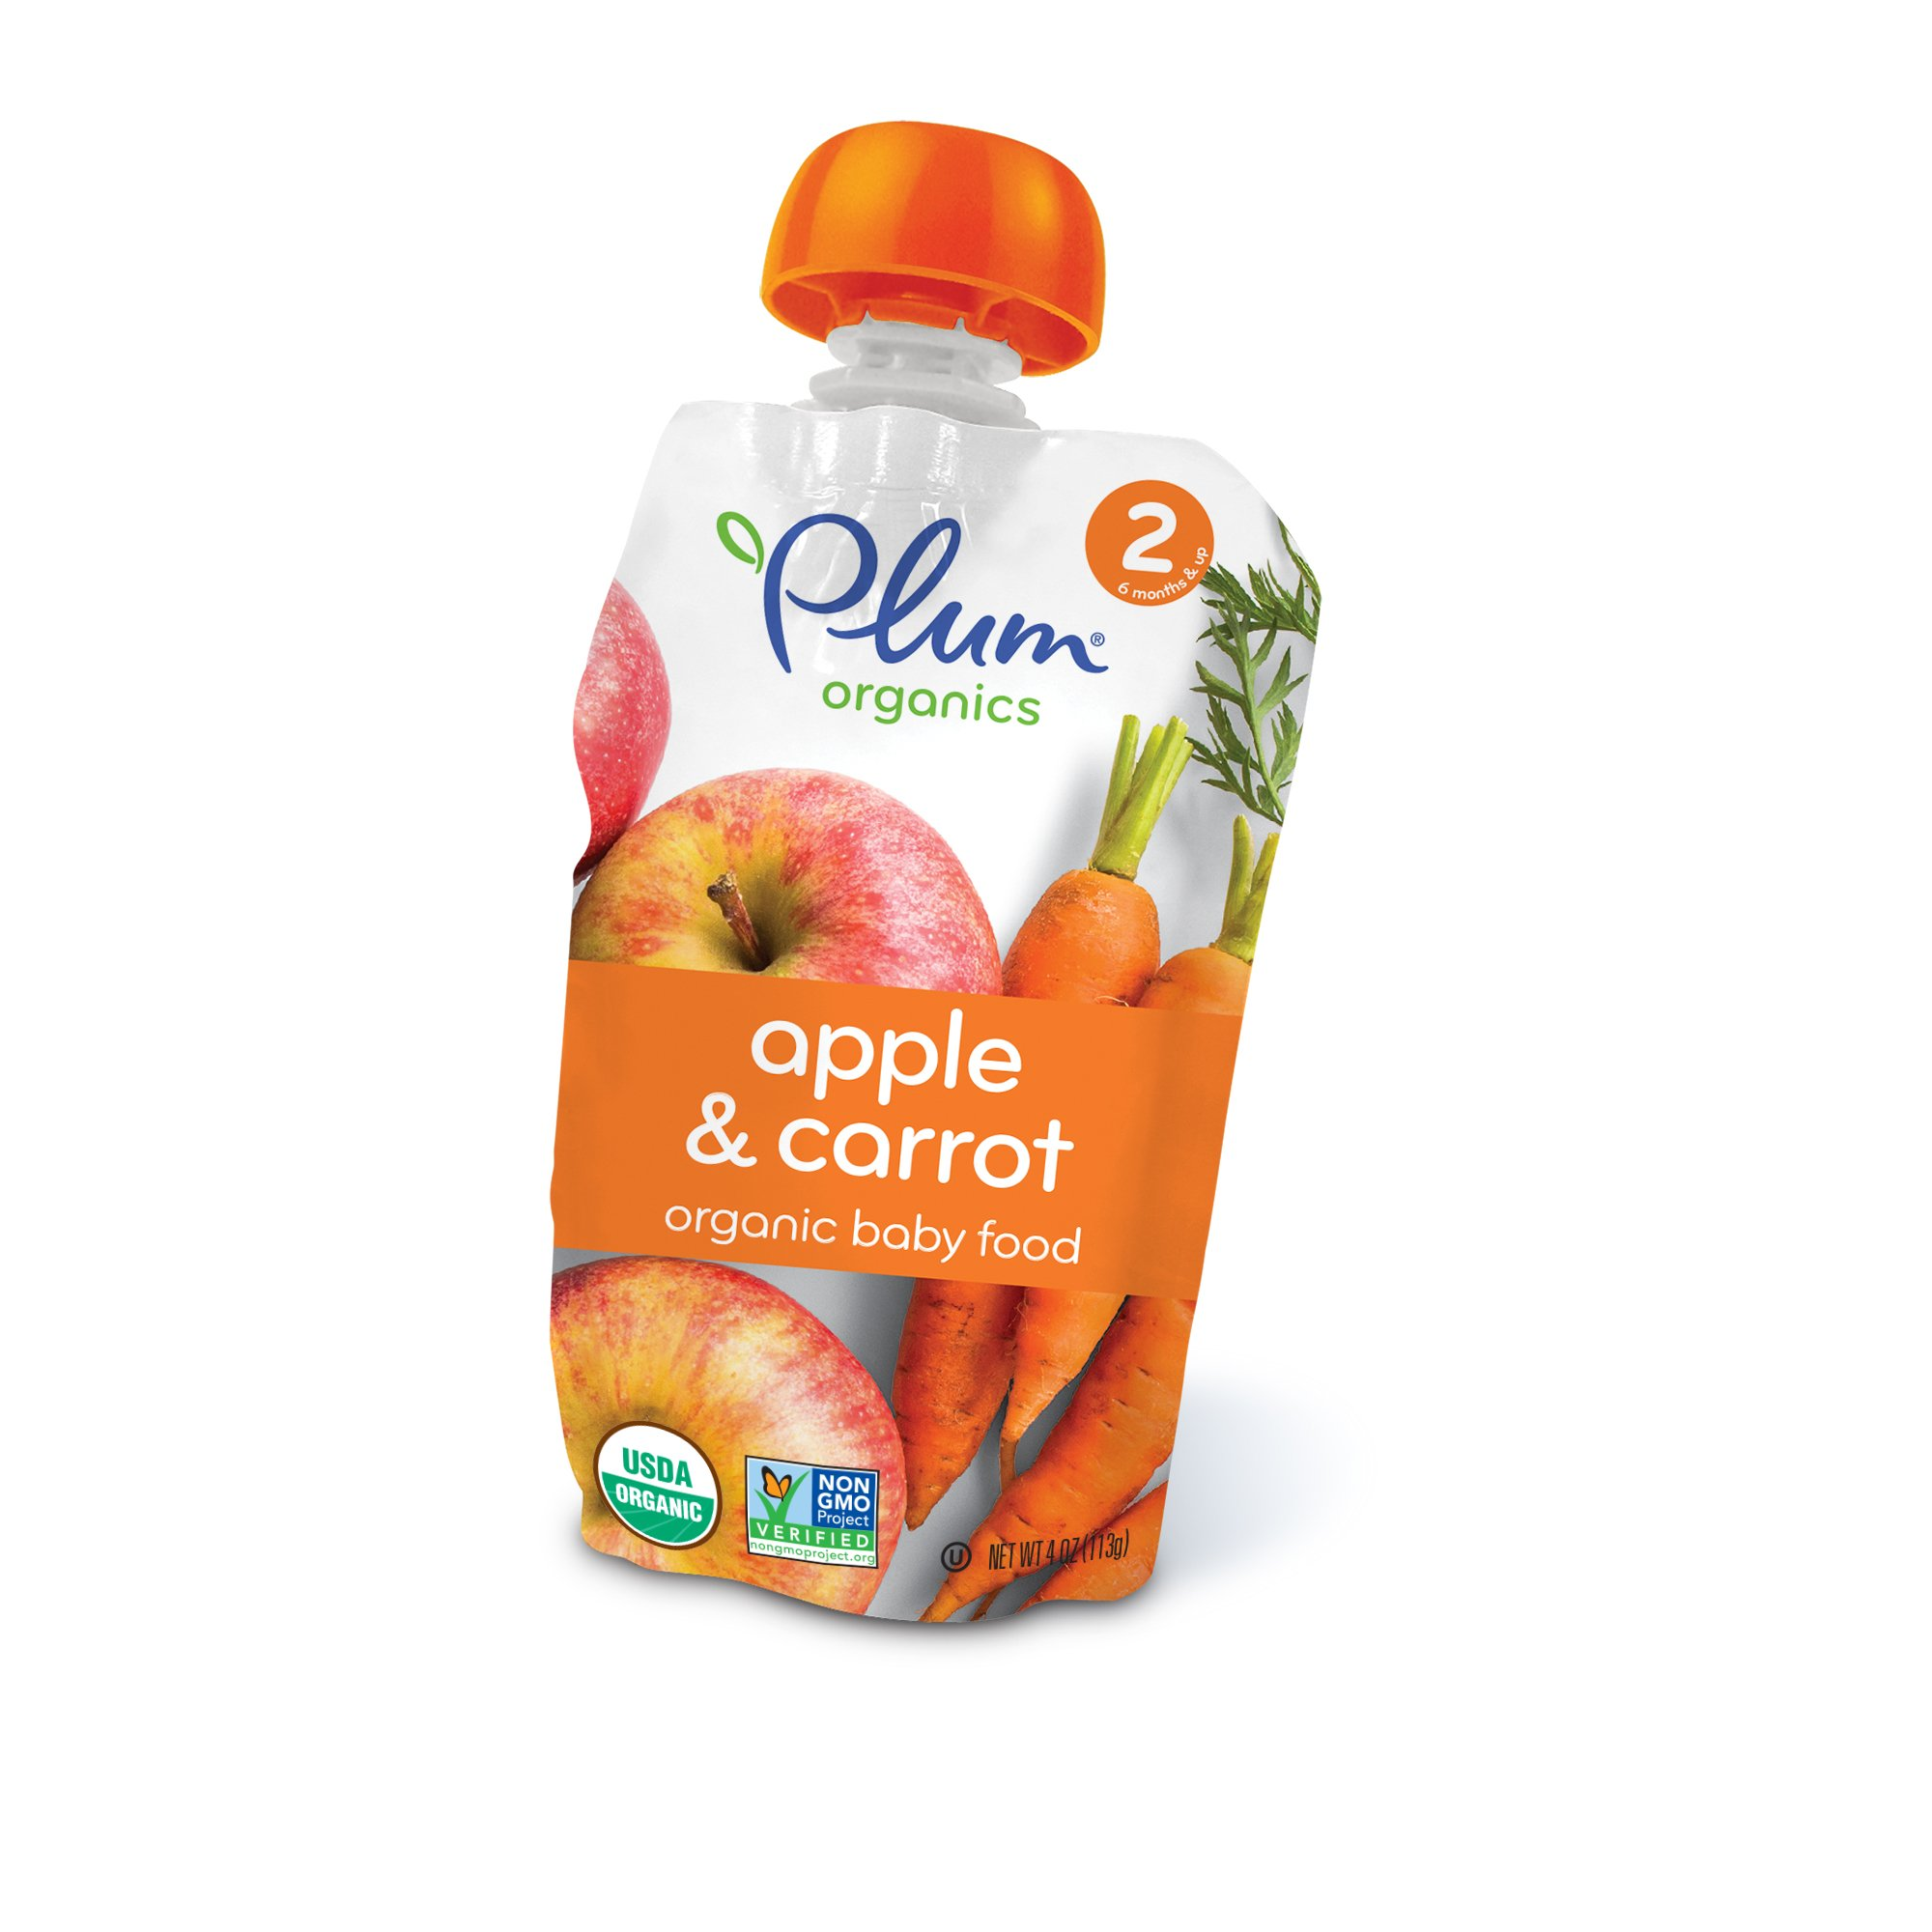 Plum Organics Stage 2, Organic Baby Food, Apple and Carrot, 4 ounce pouch (Pack of 12)